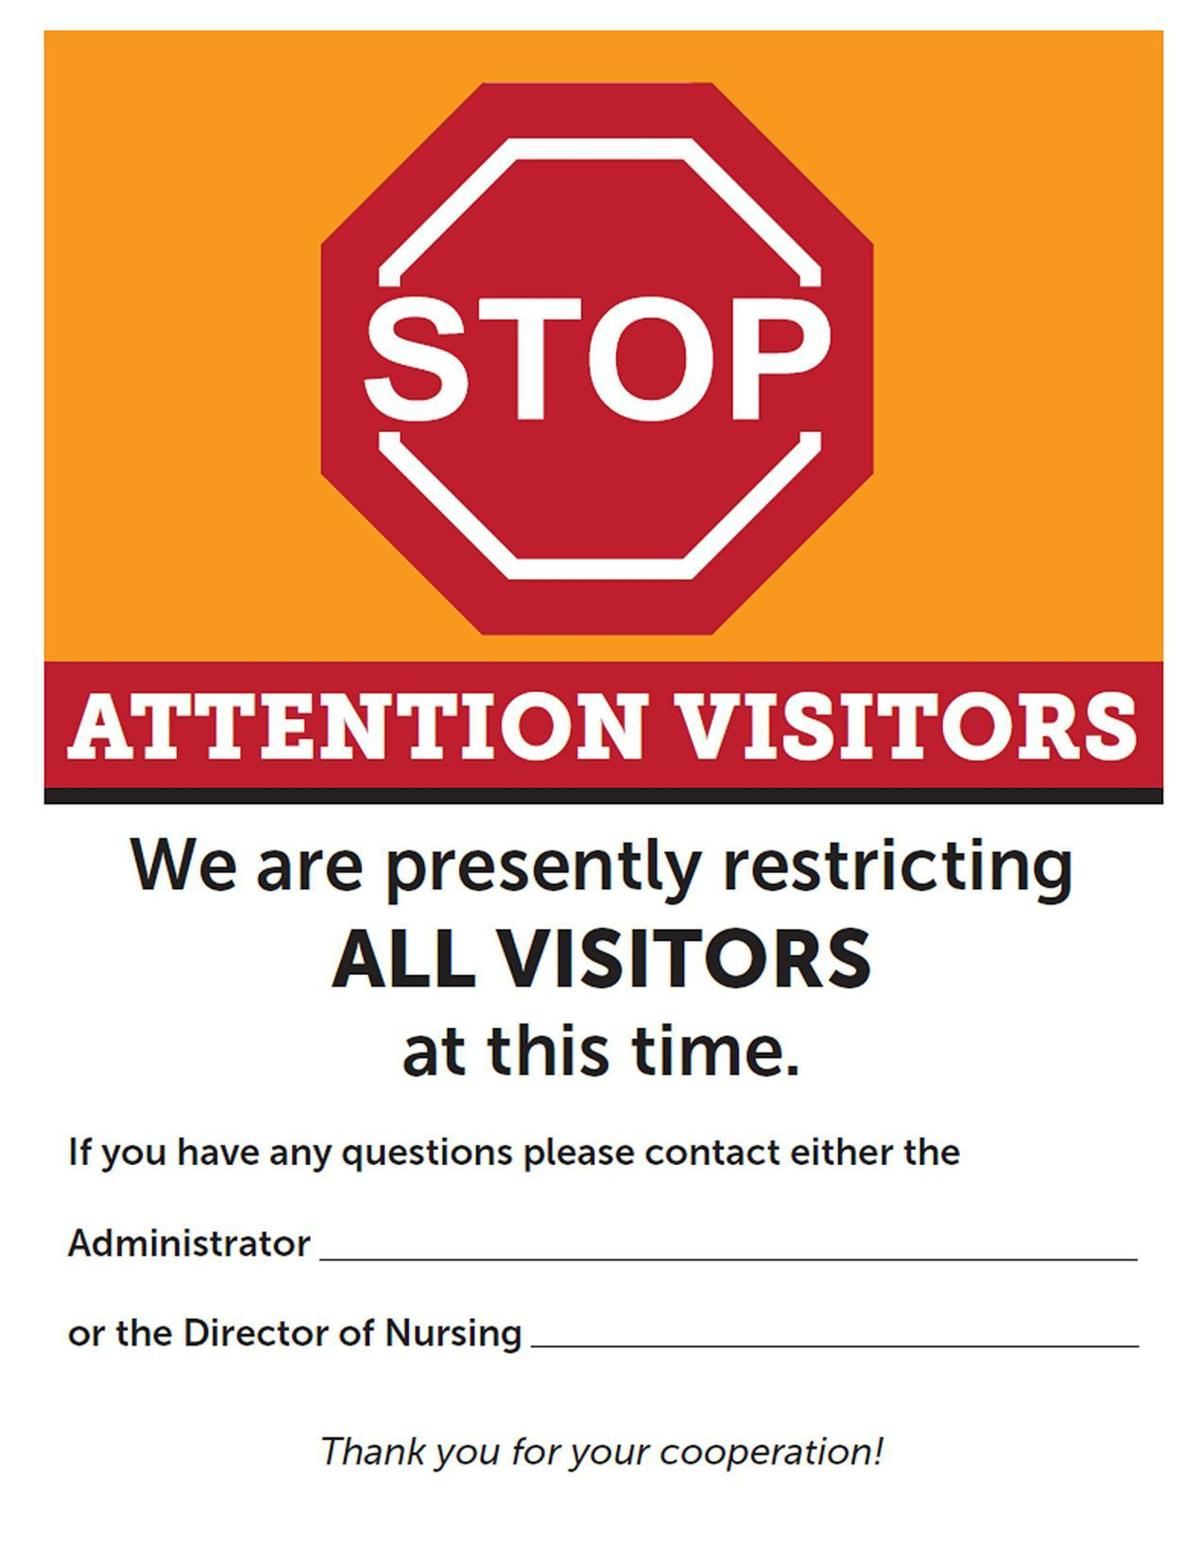 visitor visitors nursing restrictions sign homes covid heritage care facilities access limits term coronavirus impose allowing staff blm pantagraph operations